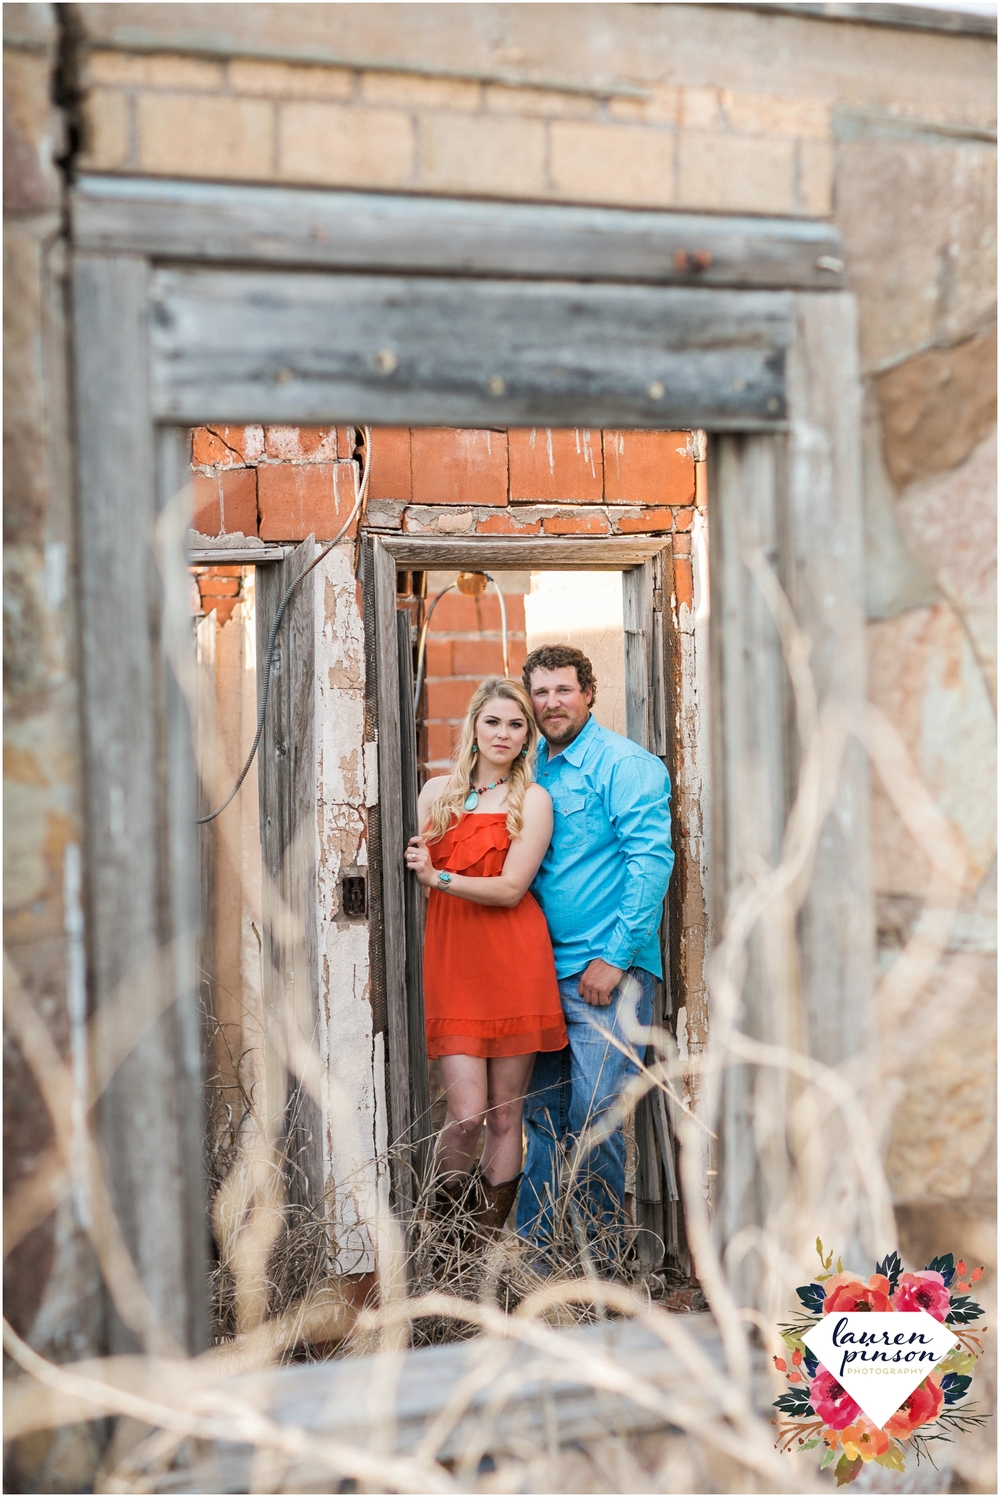 wichita-falls-wedding-photographer-engagement-session-texas-photography-oklahoma-engagement-wedding-photography_0642.jpg